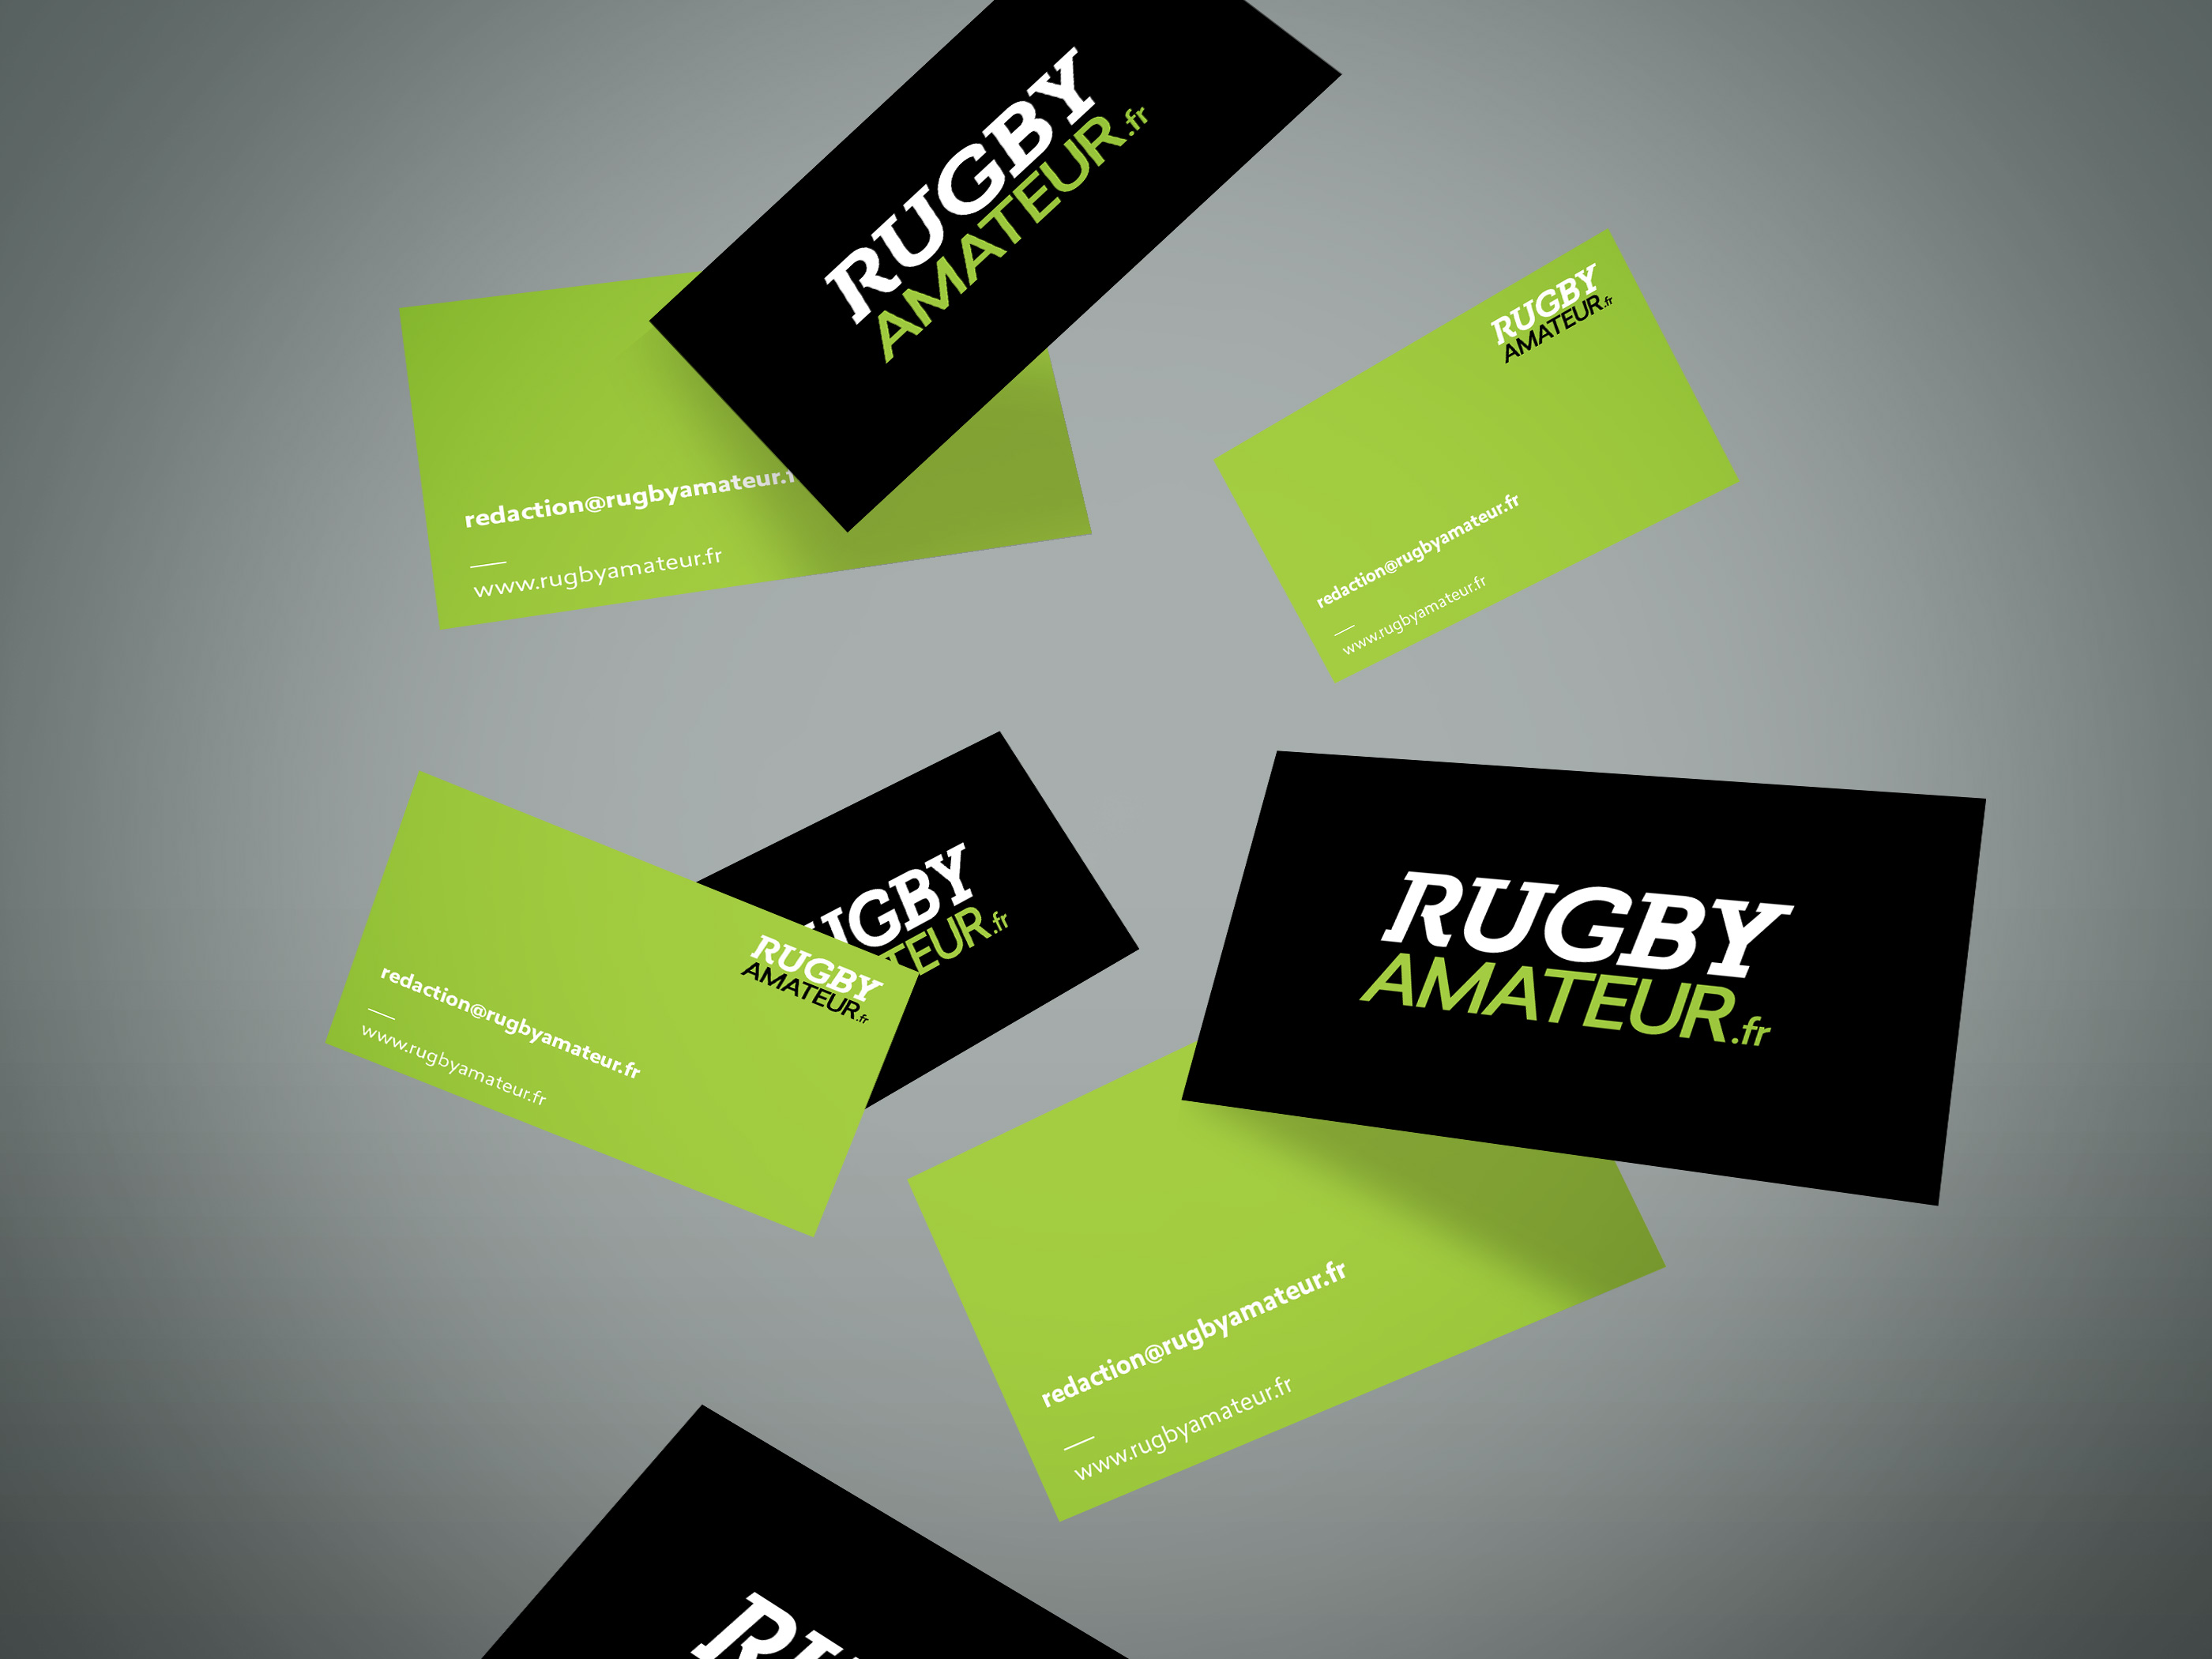 bc-rugbyamateur